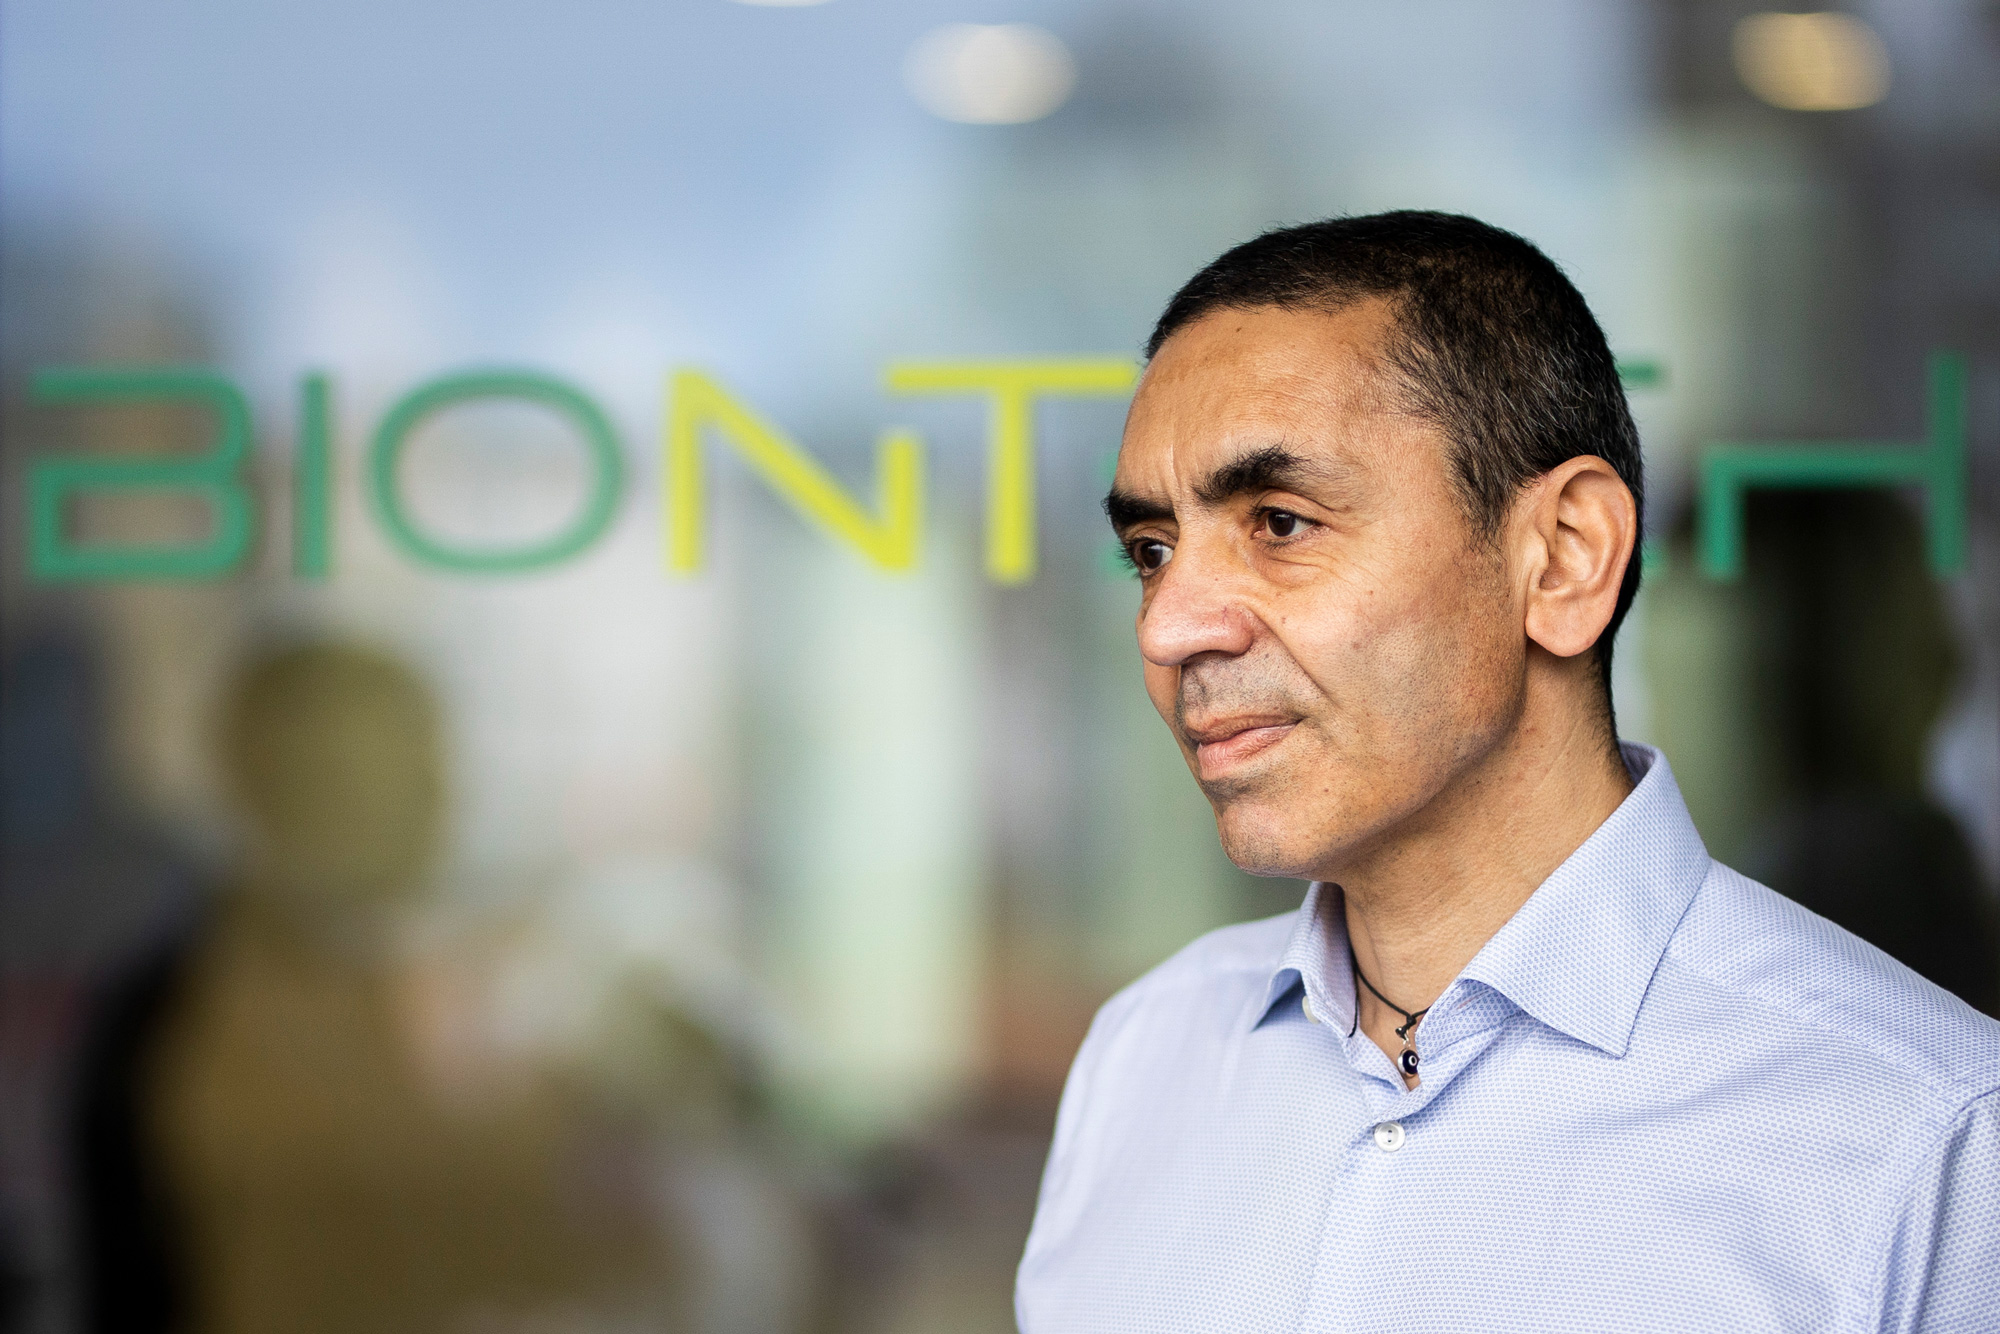 Ugur Sahin, CEO of Biontech, is pictured on December 4, 2020 in Mainz, Germany.